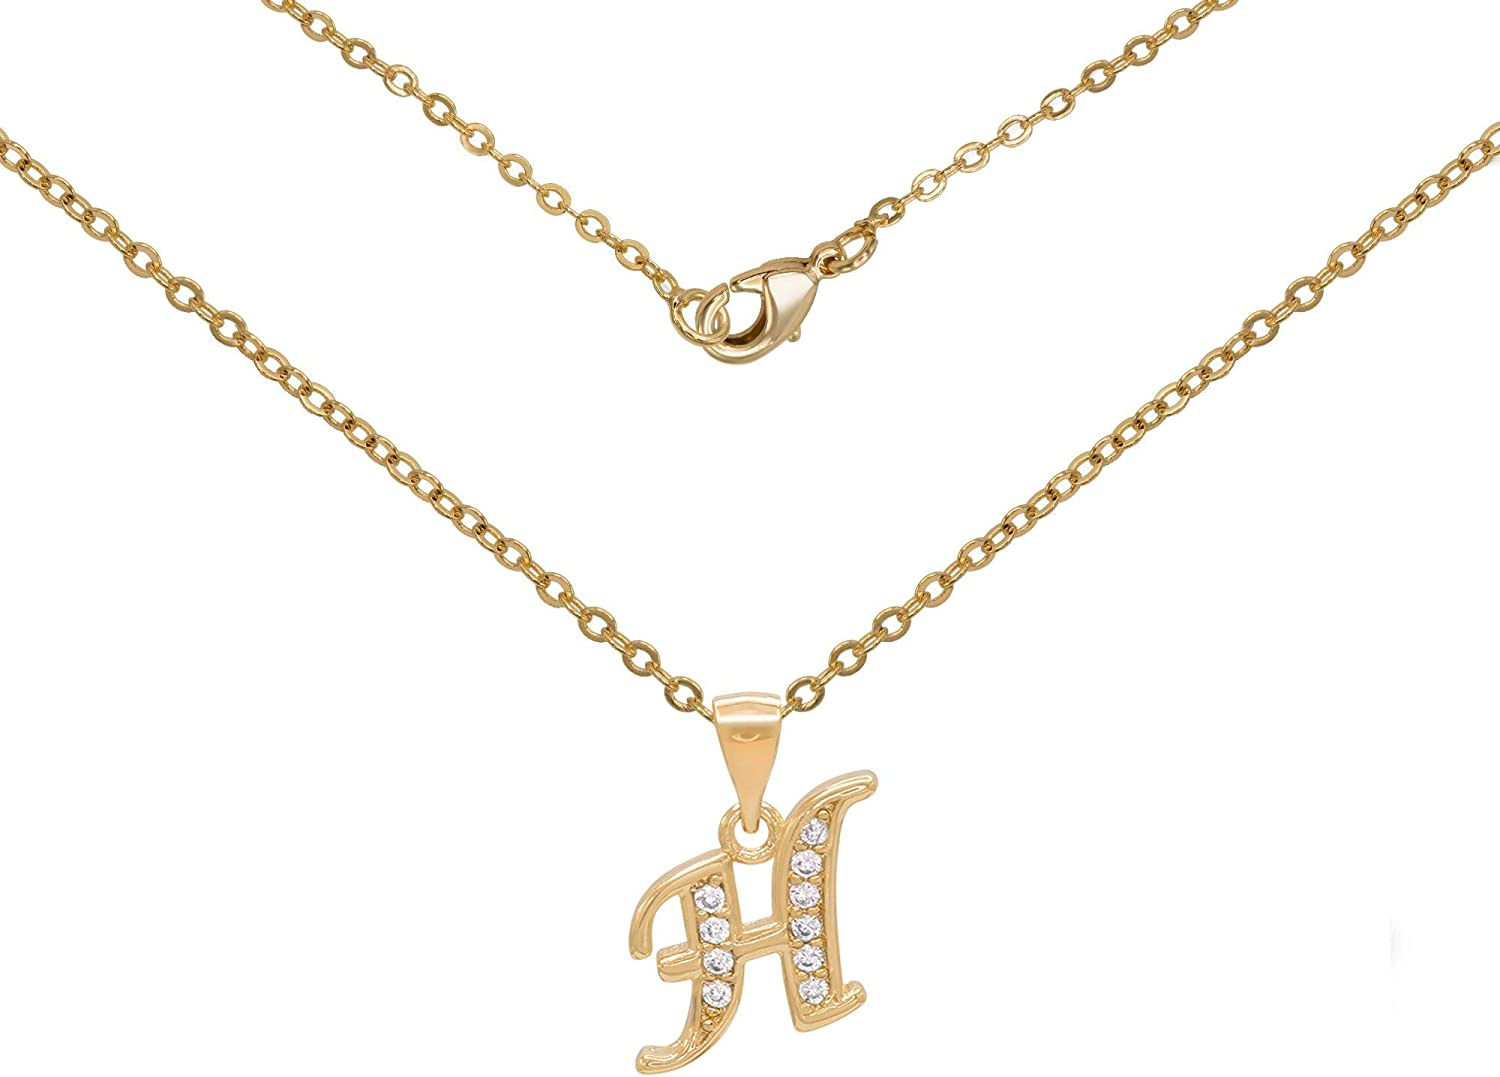 BEBERLINI Initial Max 84% Price reduction OFF Letter Pendant with Gold Fi Cubic Zirconia 18K